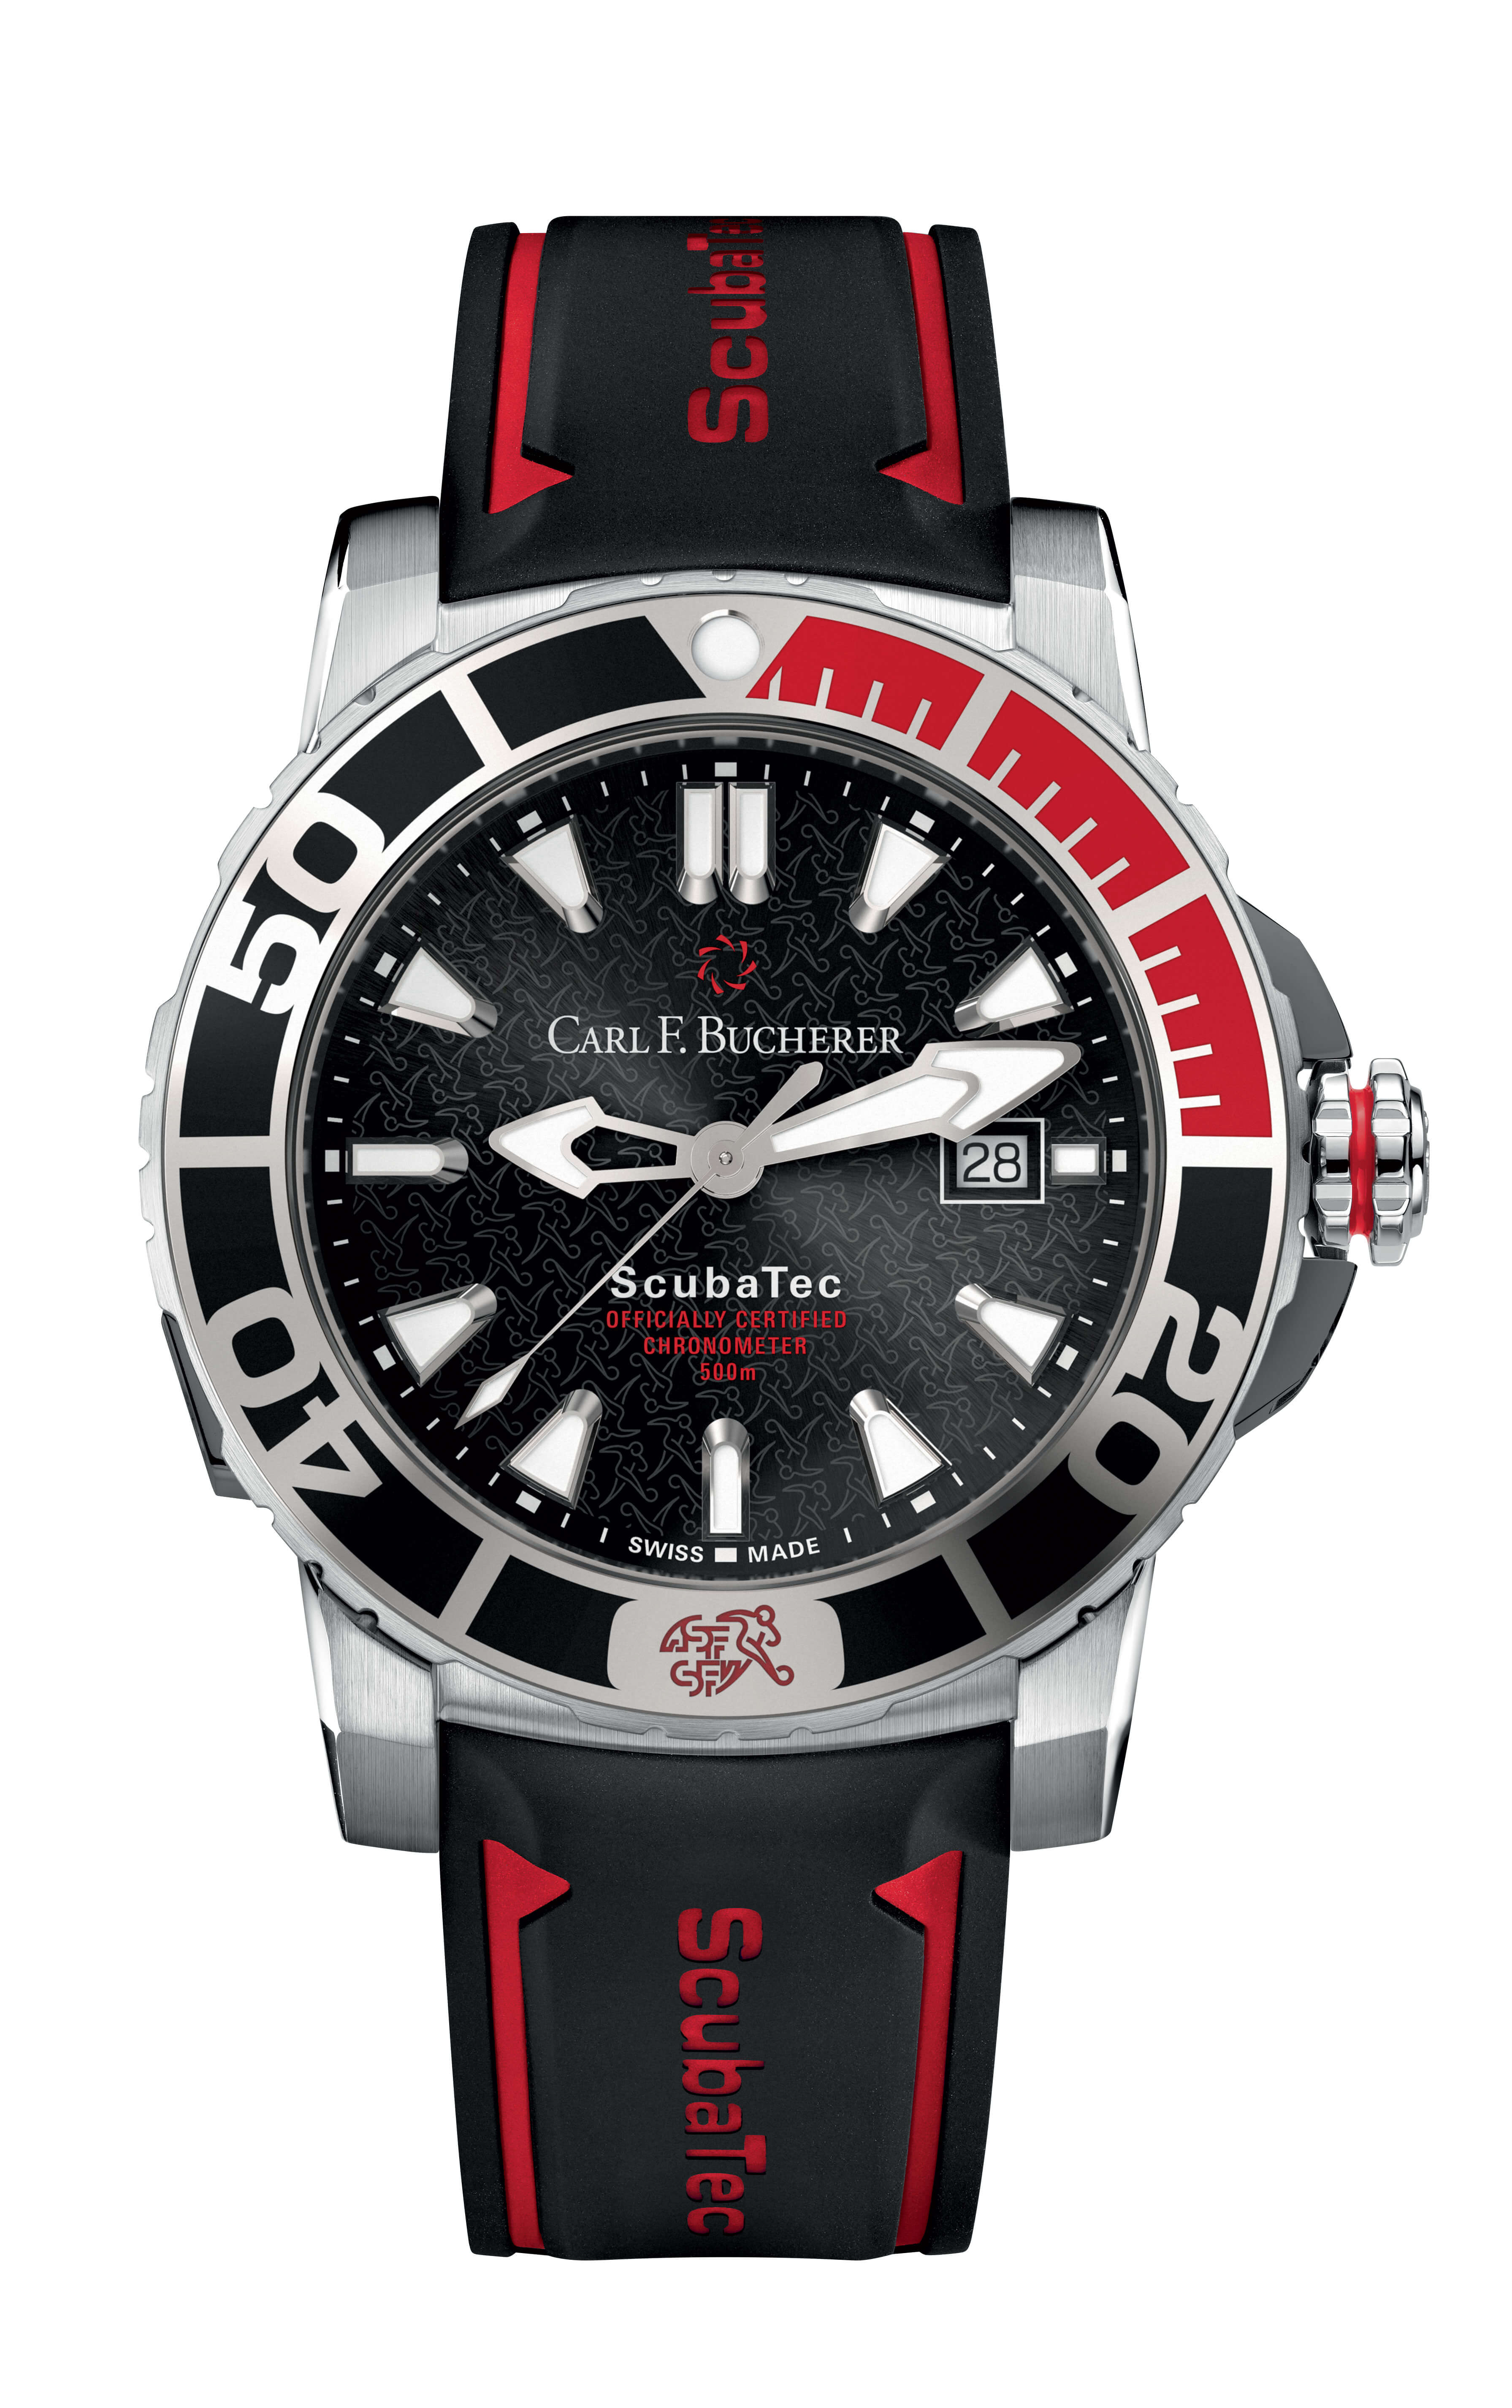 makes s keep choice a rugged in watches an worthview what for rug eye to rado gentleman out first